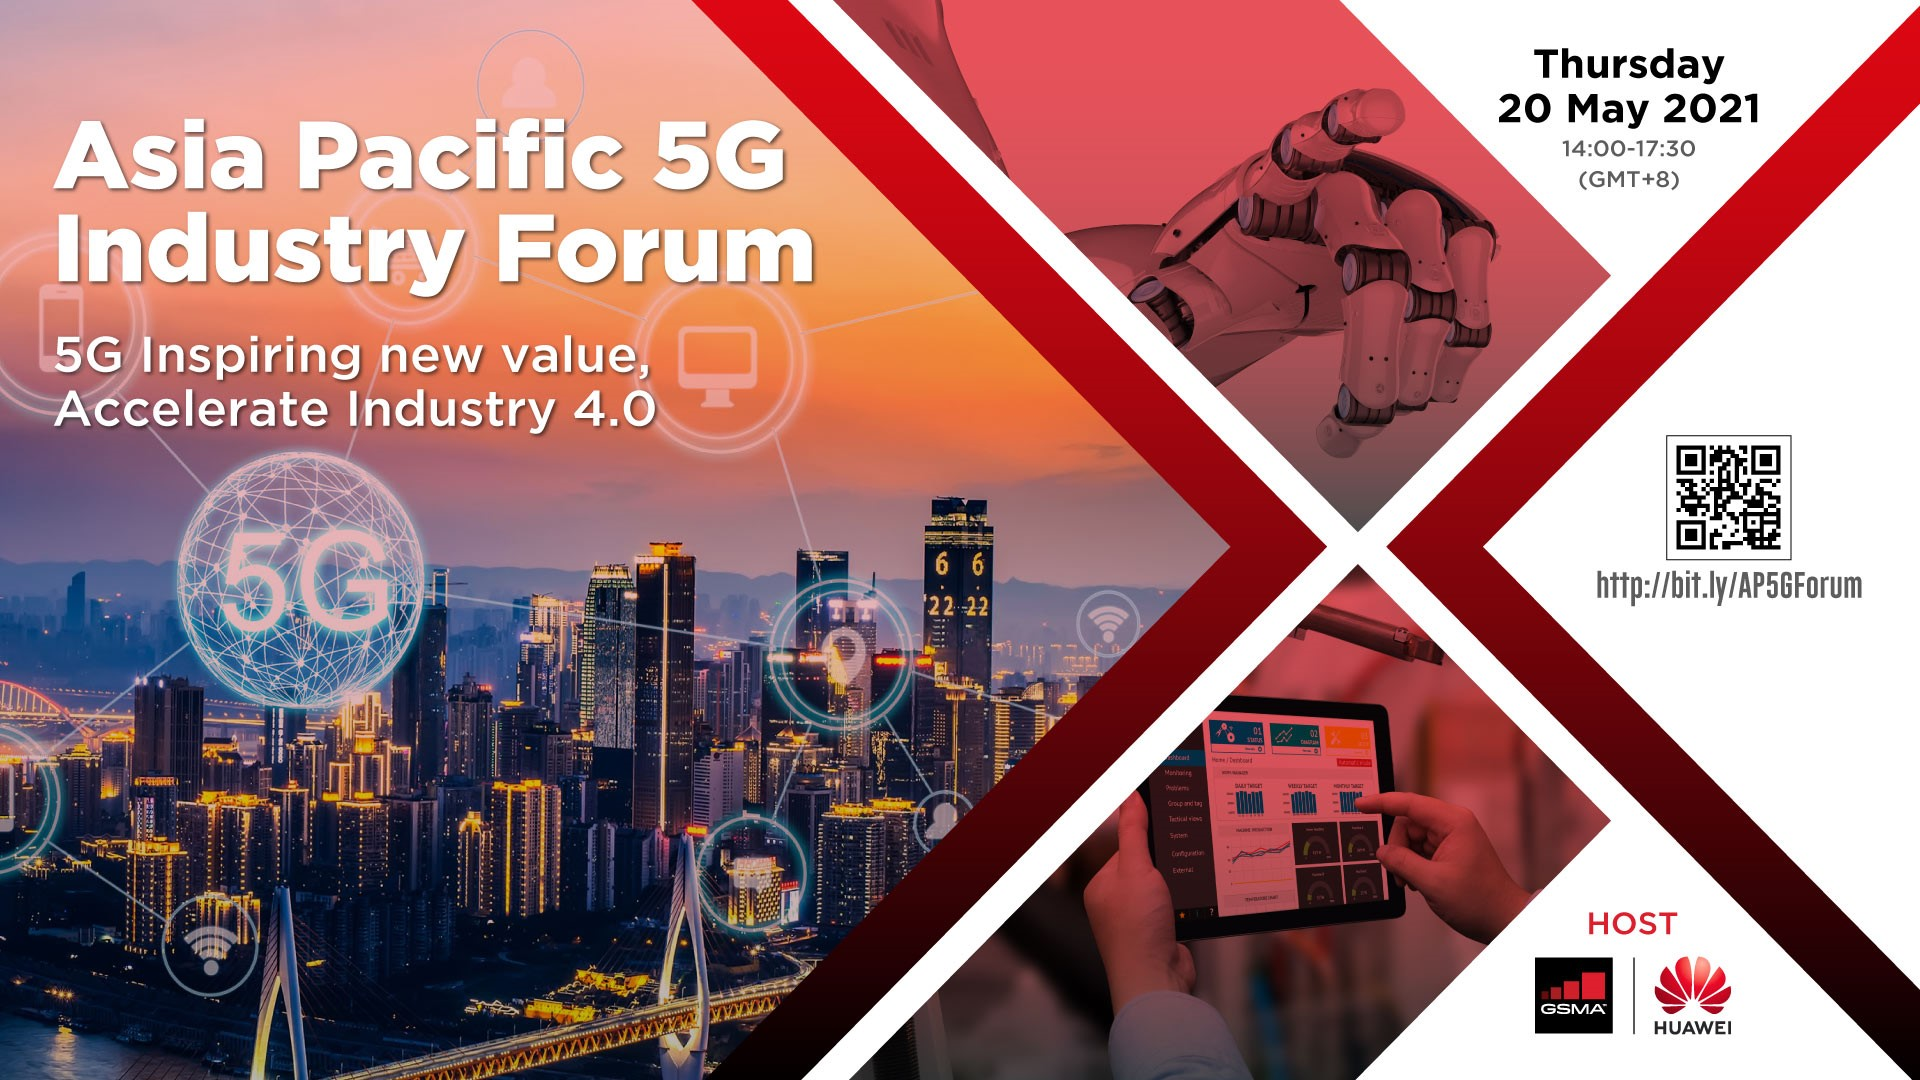 APAC 5G Industry Forum – powered by GSMA and Huawei